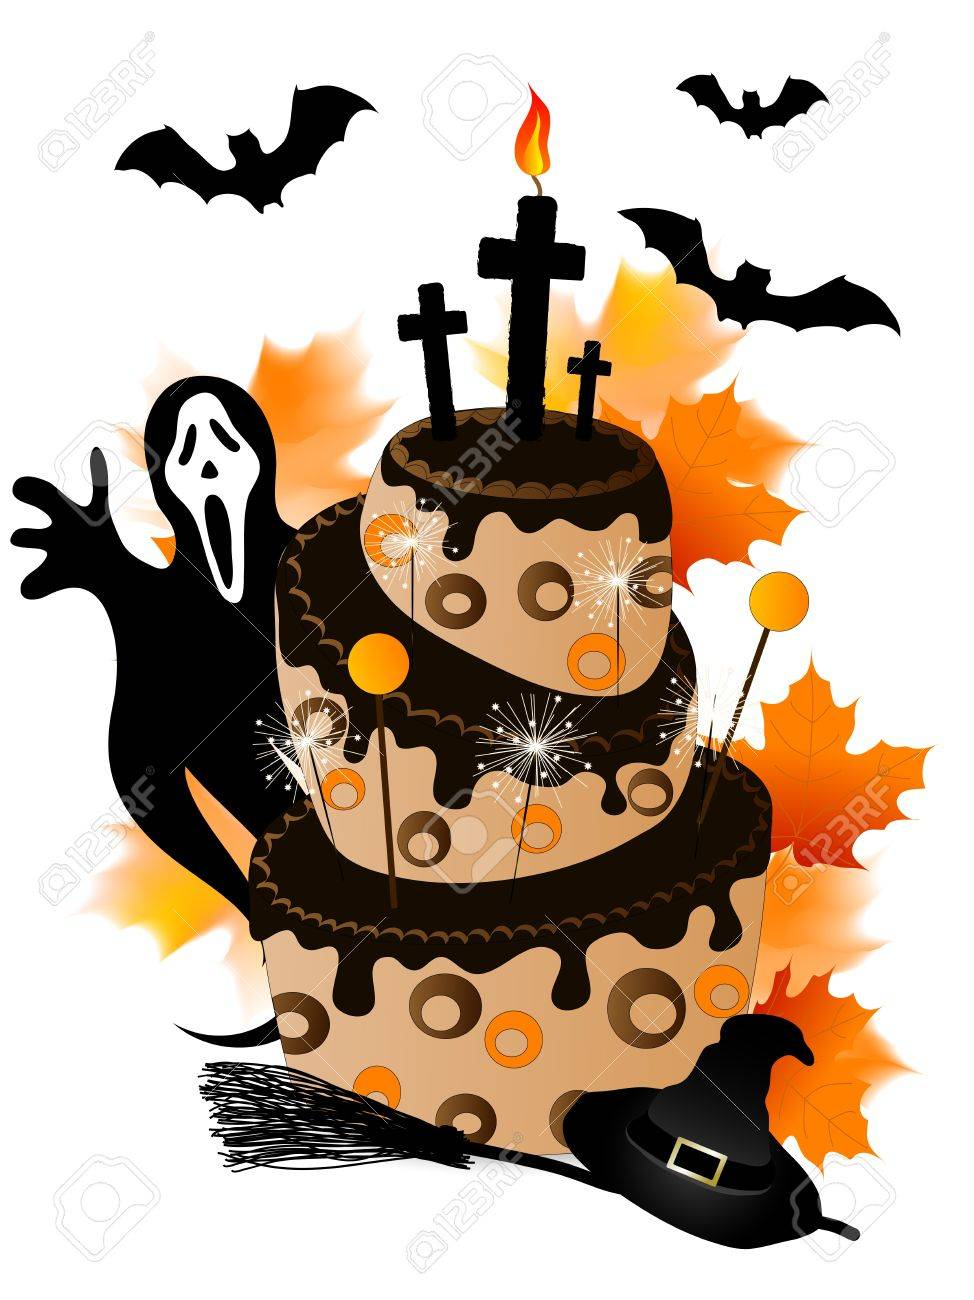 Halloween Cake With Chocolate Sparklers And Ghost Royalty Free